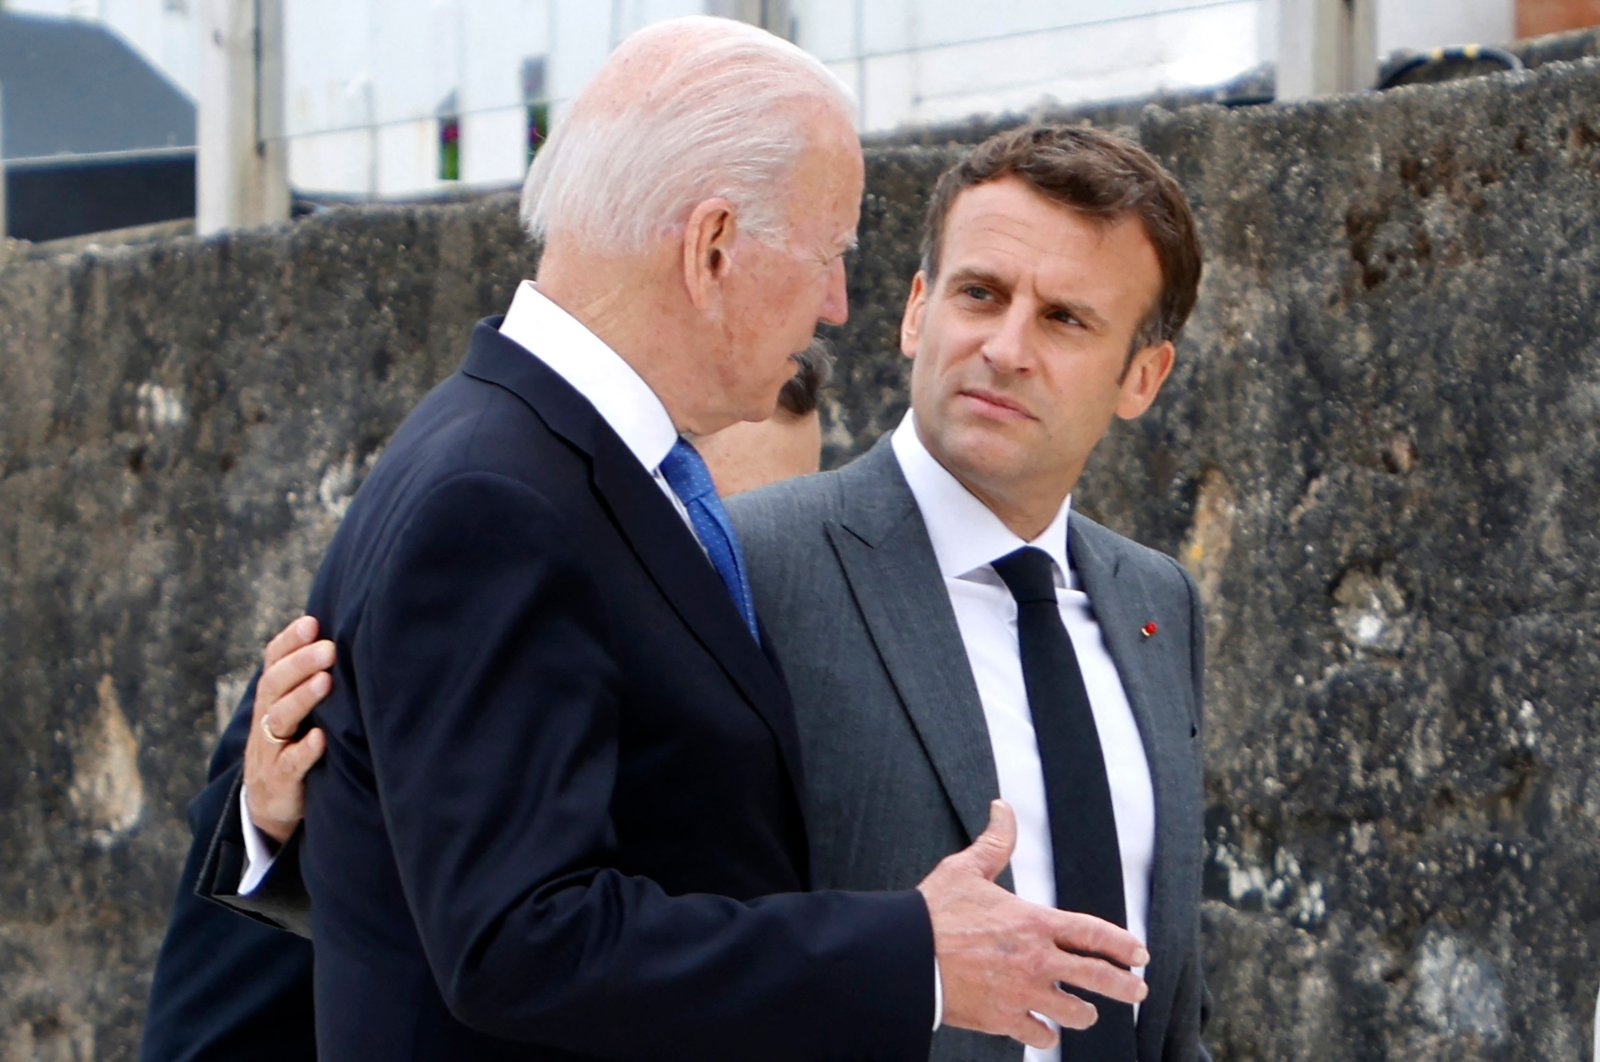 U.S. President Joe Biden (L) and French President Emmanuel Macron speak after the family photo at the start of the G-7 summit in Carbis Bay, Cornwall, Britain, June 11, 2021. (AFP Photo)